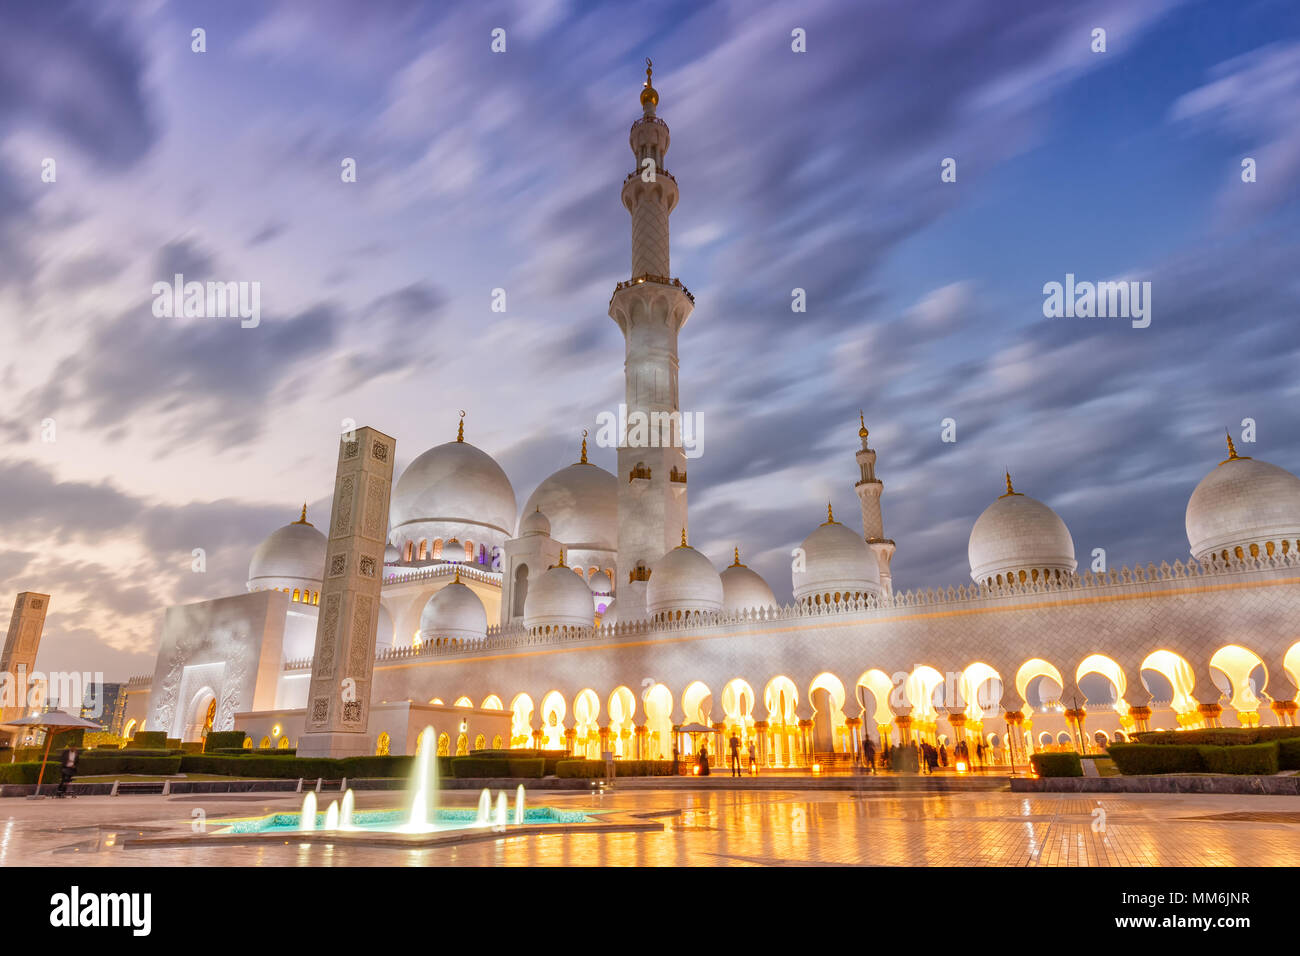 Abu Dhabi Sheikh Zayed Mosque minaret crépuscule Emirats Arabes Unis ÉMIRATS ARABES UNIS Photo Stock